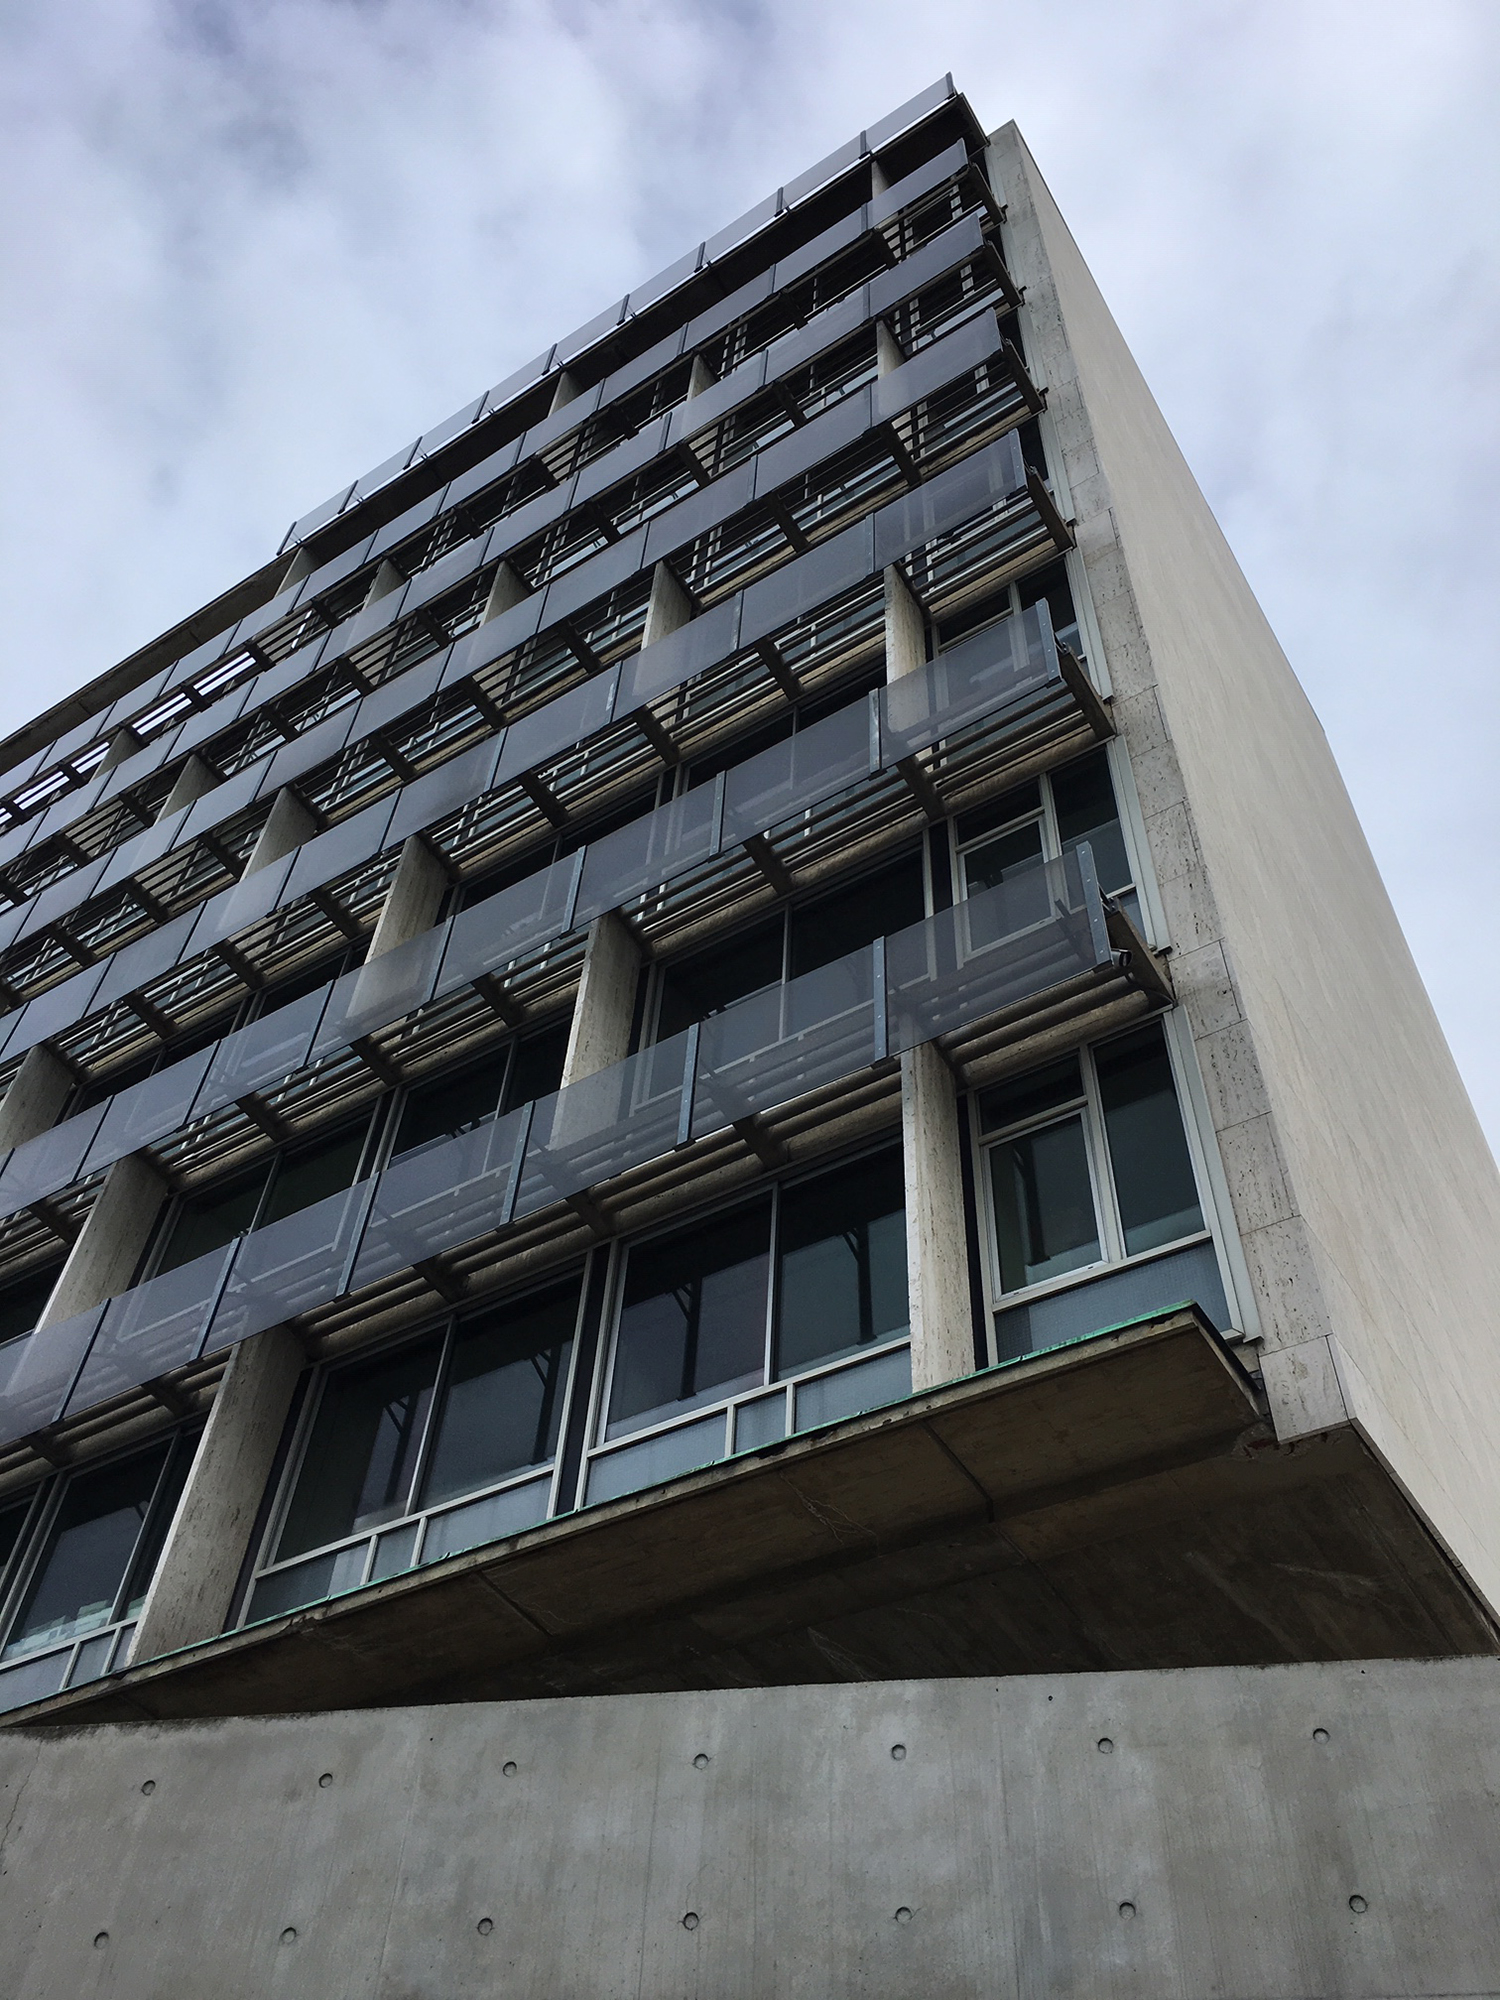 A corner of a building with windows and balconies with a concrete wall in the foreground.